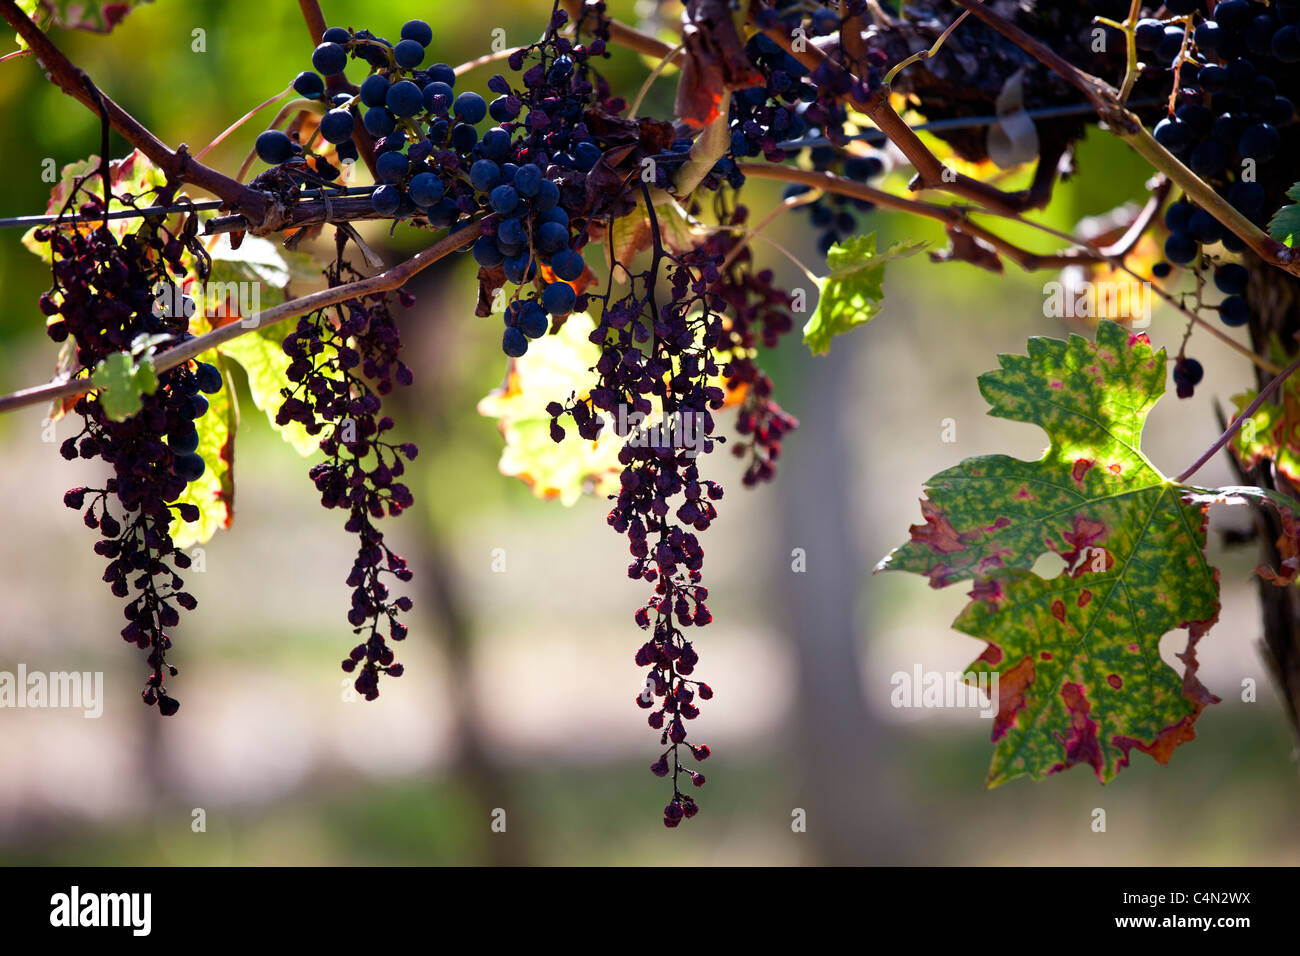 Withered Merlot grapes on an ancient vine at Chateau Fontcaille Bellevue, in Bordeaux region of France - Stock Image